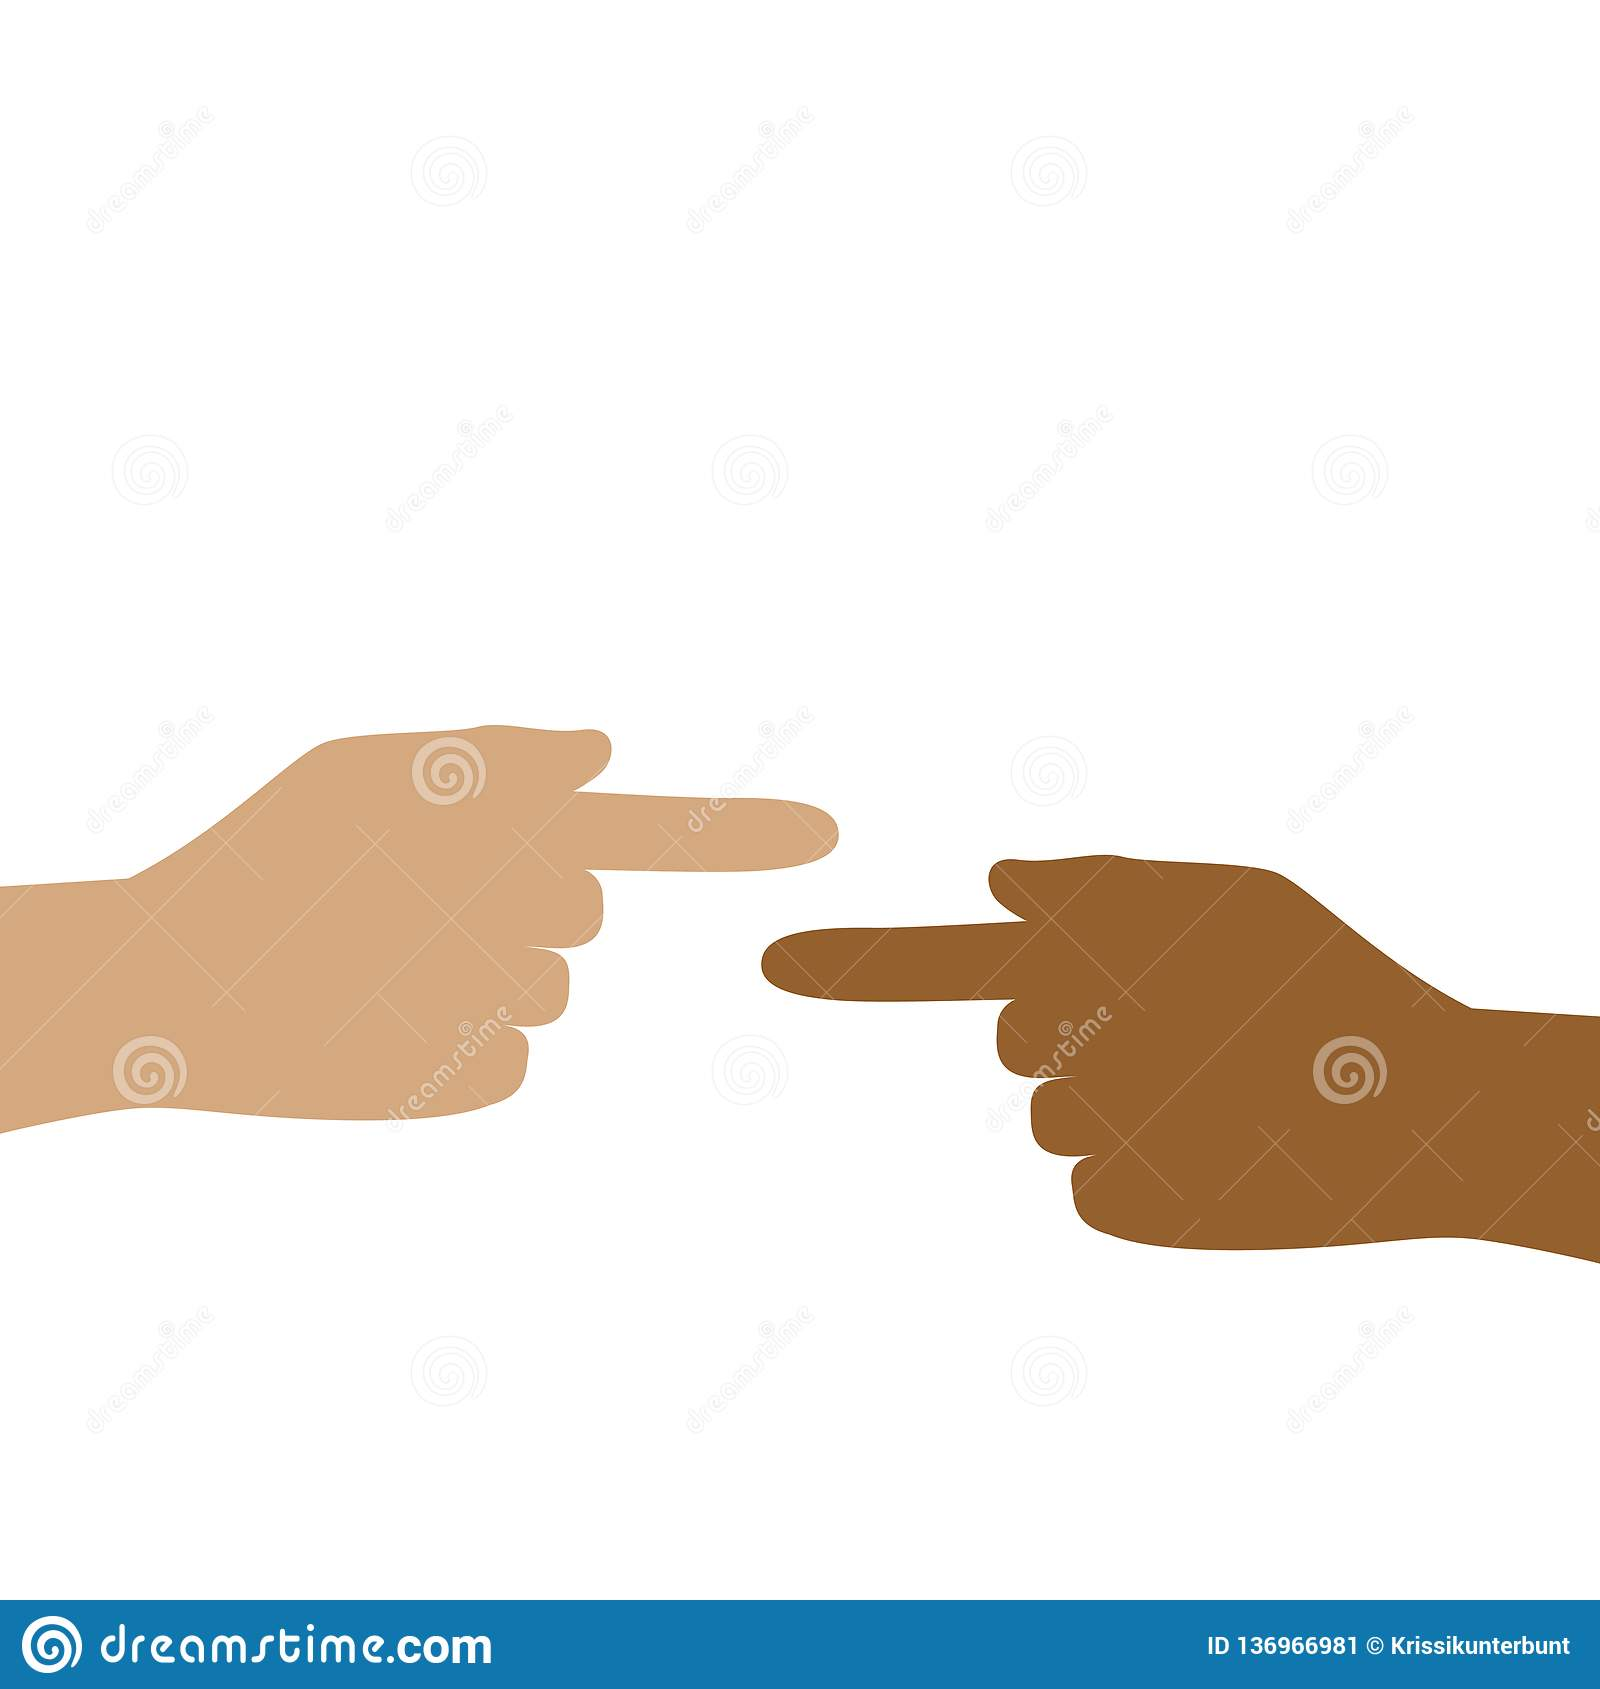 Two hands with different skin color show each other